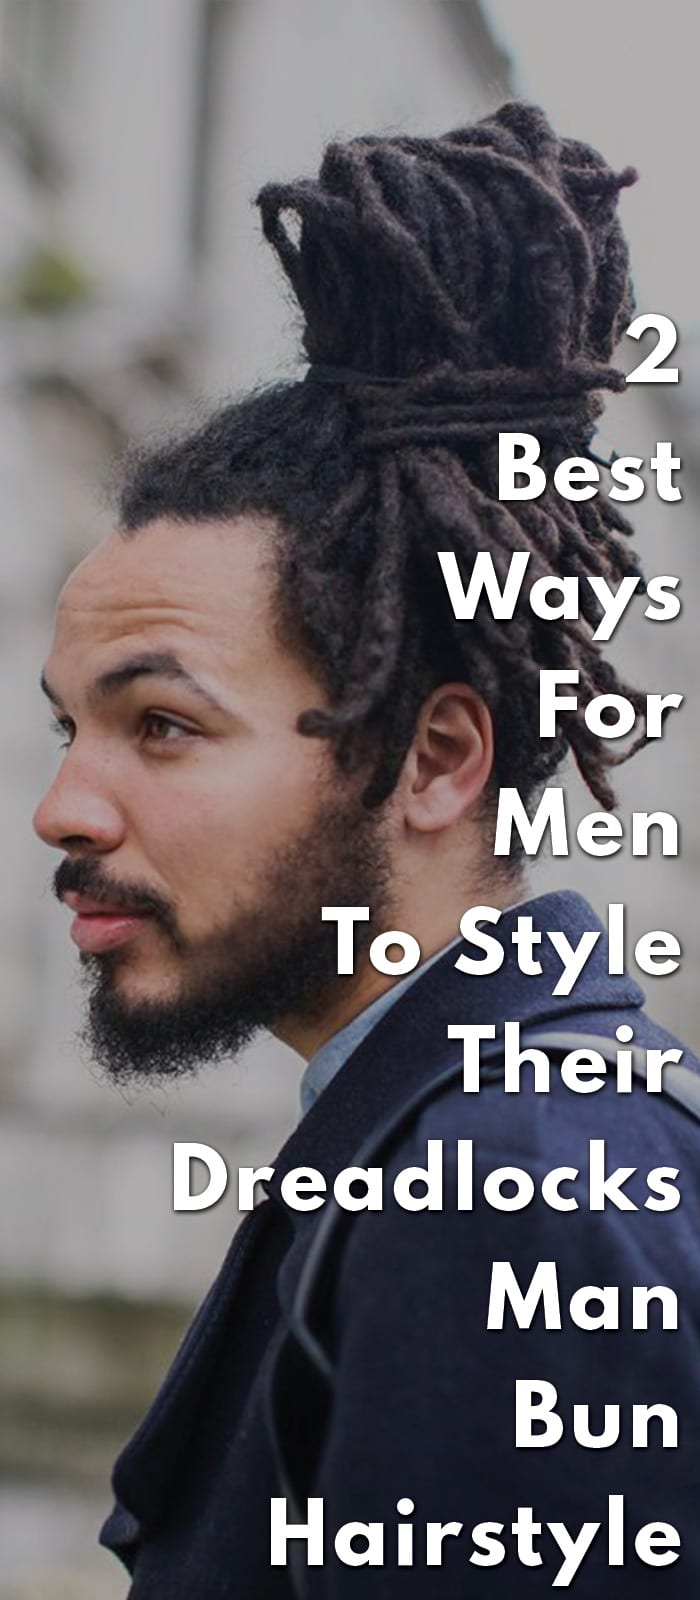 2 Best Ways For Men To Style Their Dreadlocks Man Bun Hairstyle